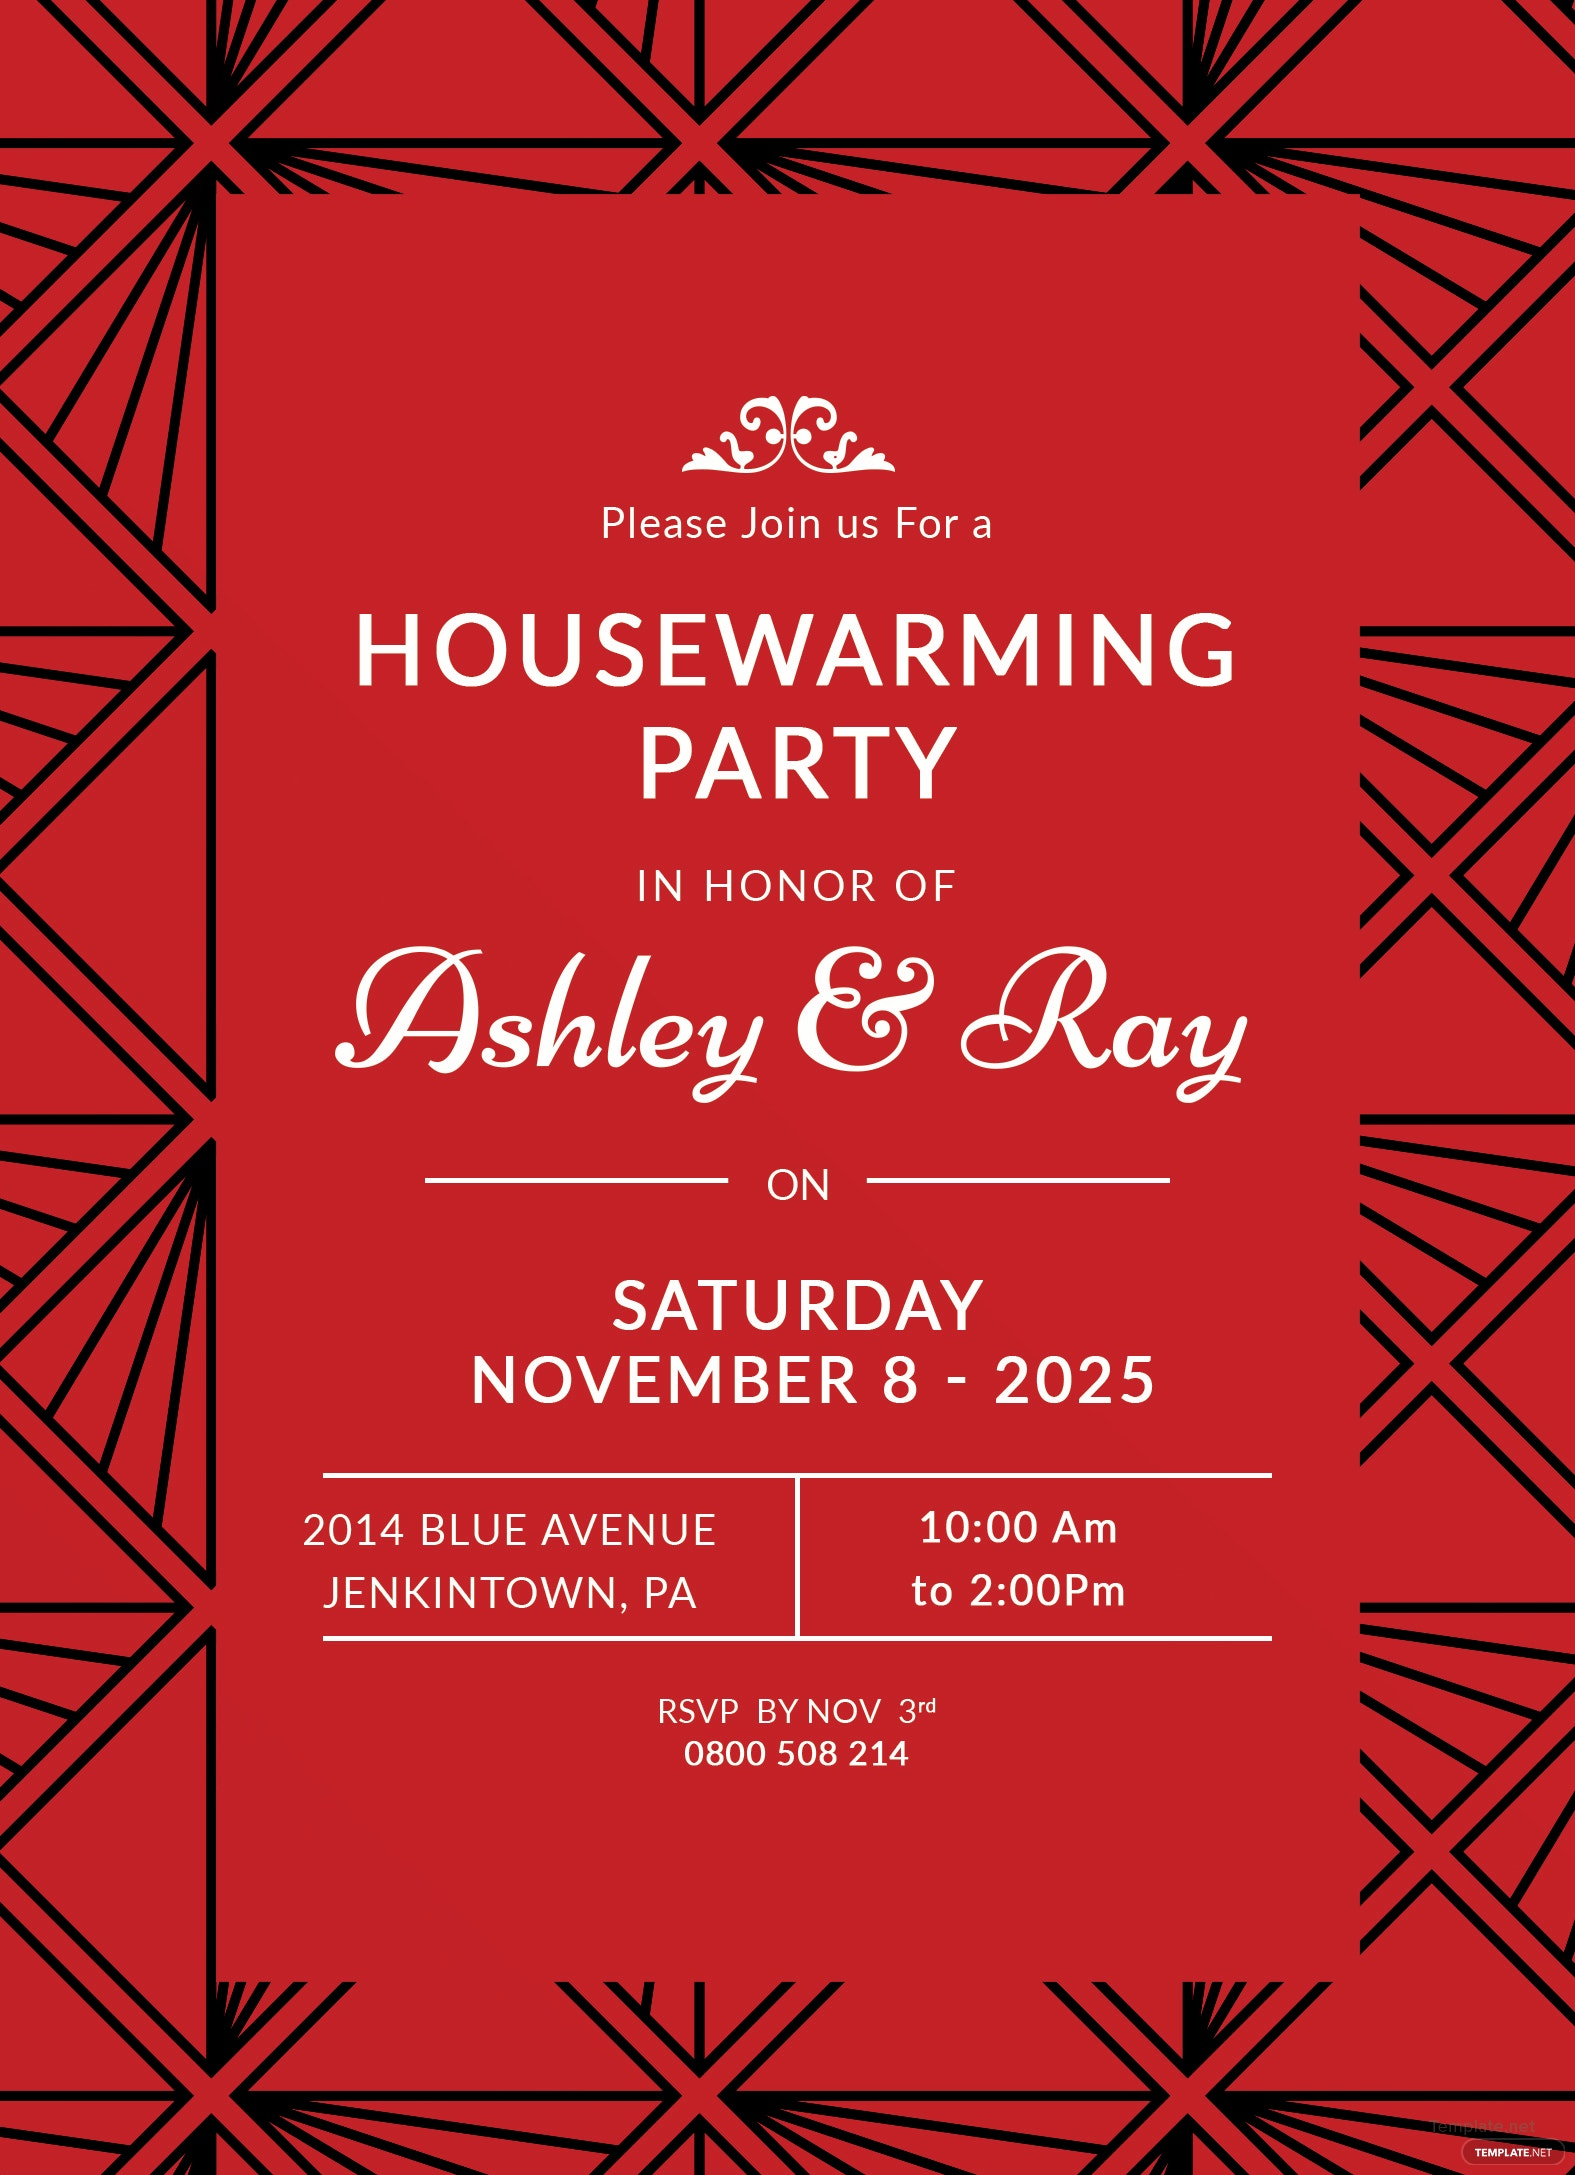 Free Housewarming Invitation Template in Adobe Photoshop